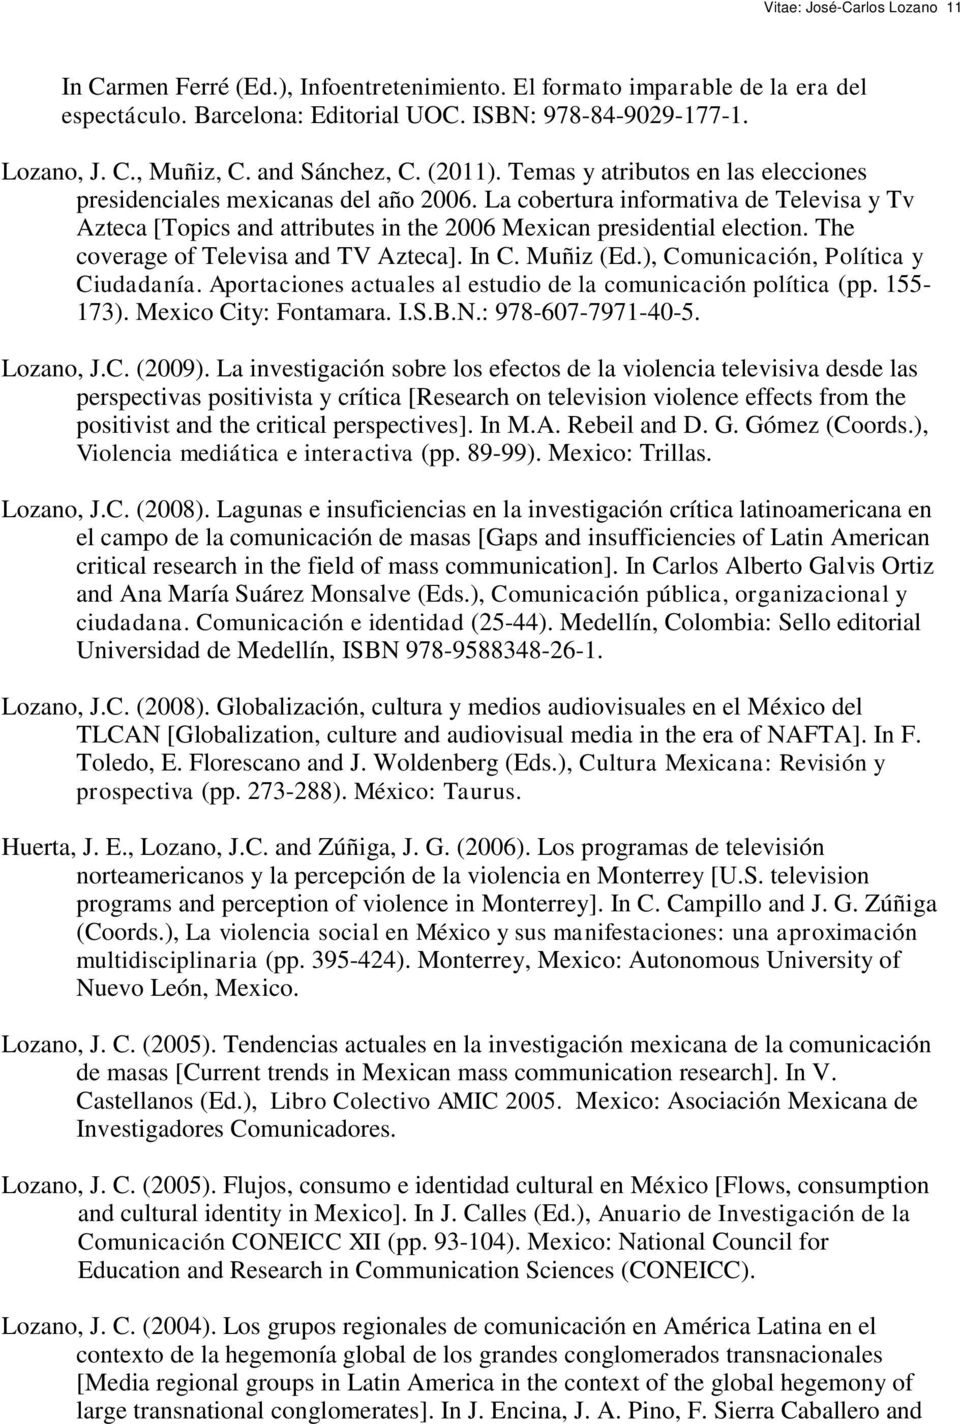 La cobertura informativa de Televisa y Tv Azteca [Topics and attributes in the 2006 Mexican presidential election. The coverage of Televisa and TV Azteca]. In C. Muñiz (Ed.